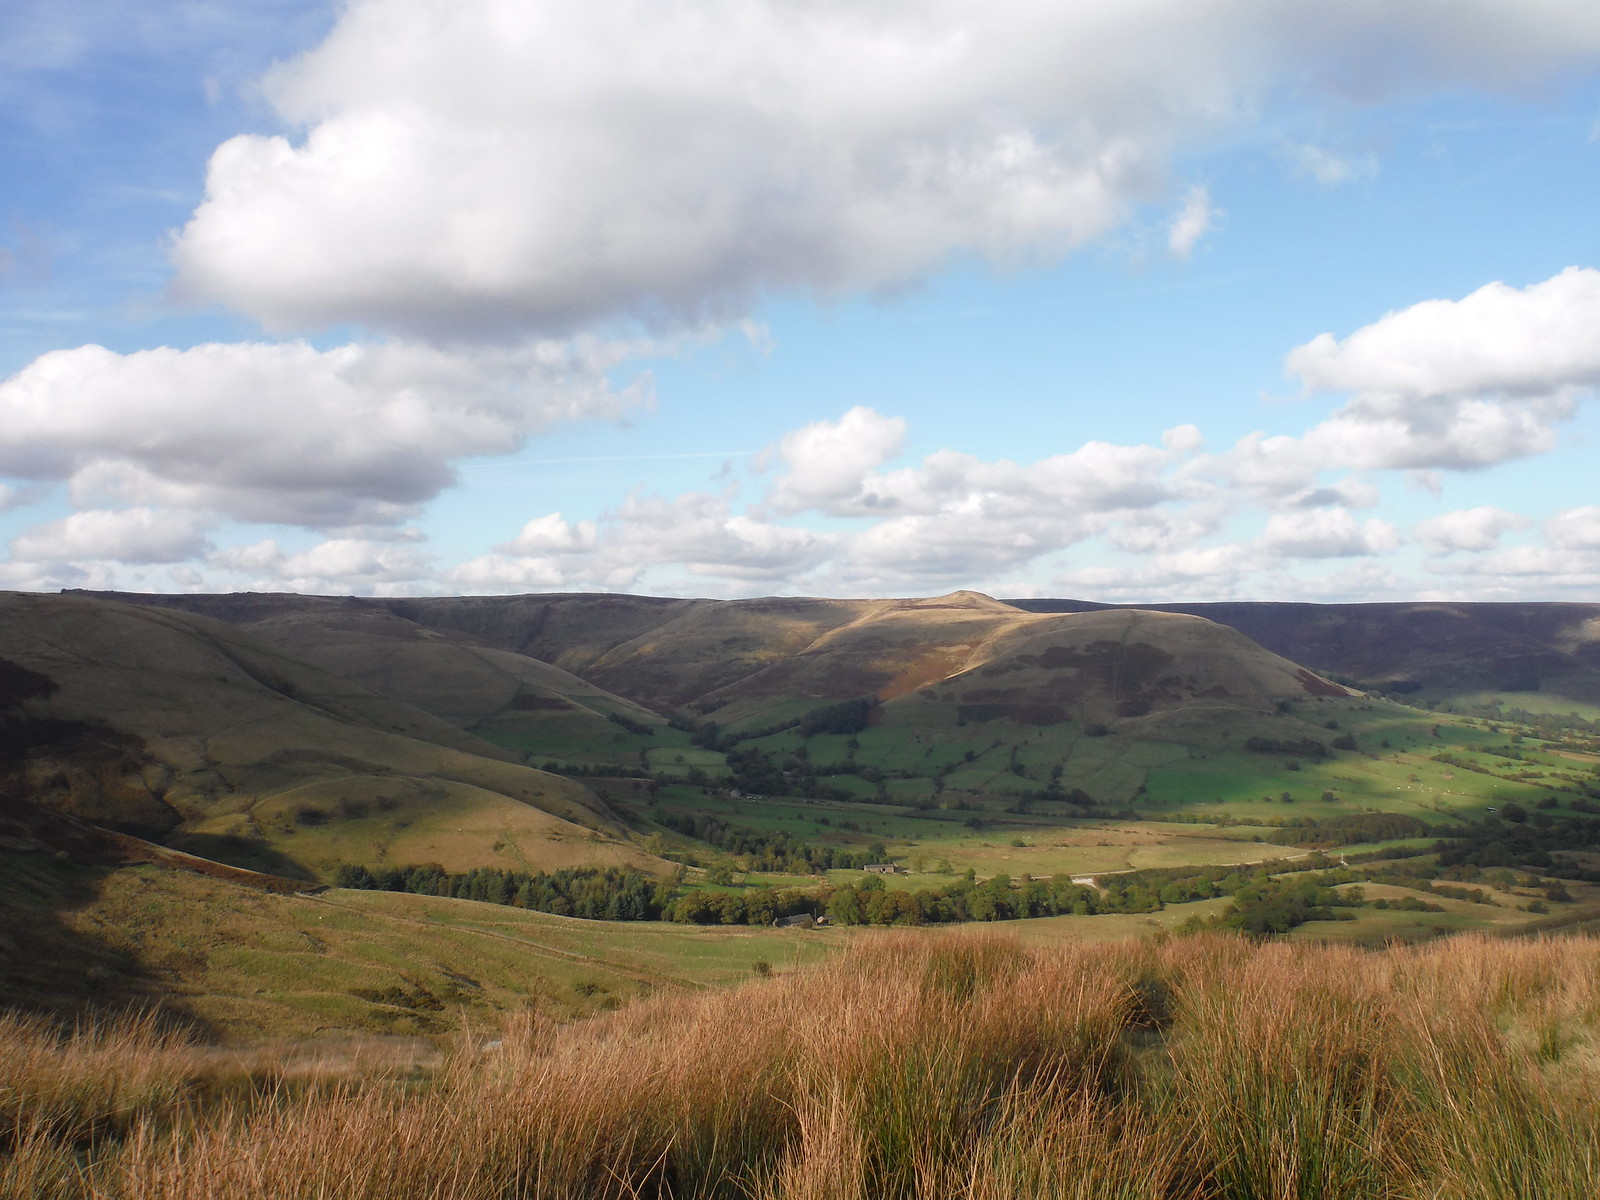 Crowden Clough and Grindslow Knoll, from Rushup Edge SWC Walk 302 - Bamford to Edale (via Win Hill and Great Ridge)